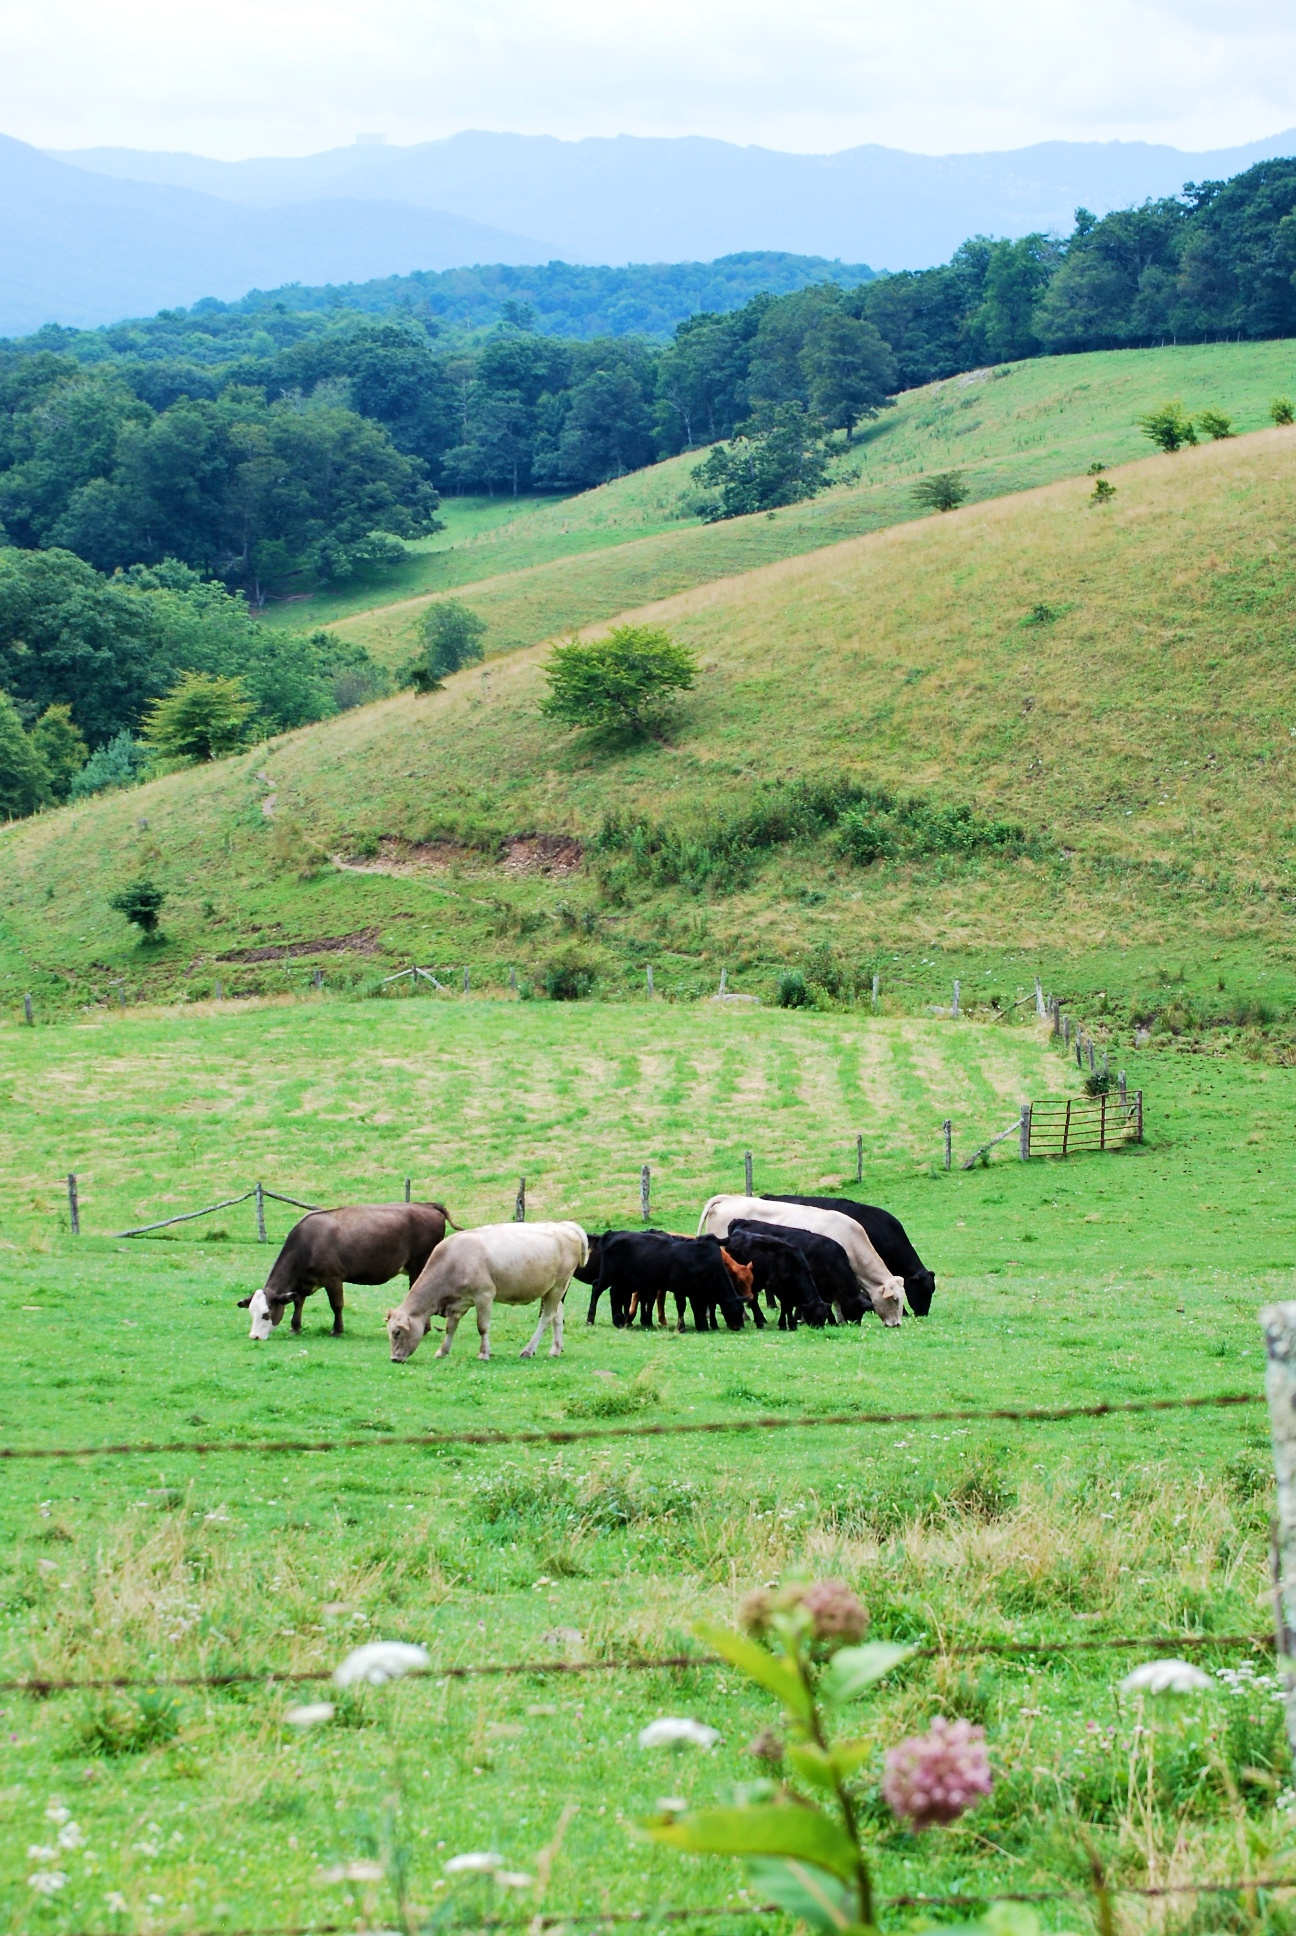 cowsgrazing_2013